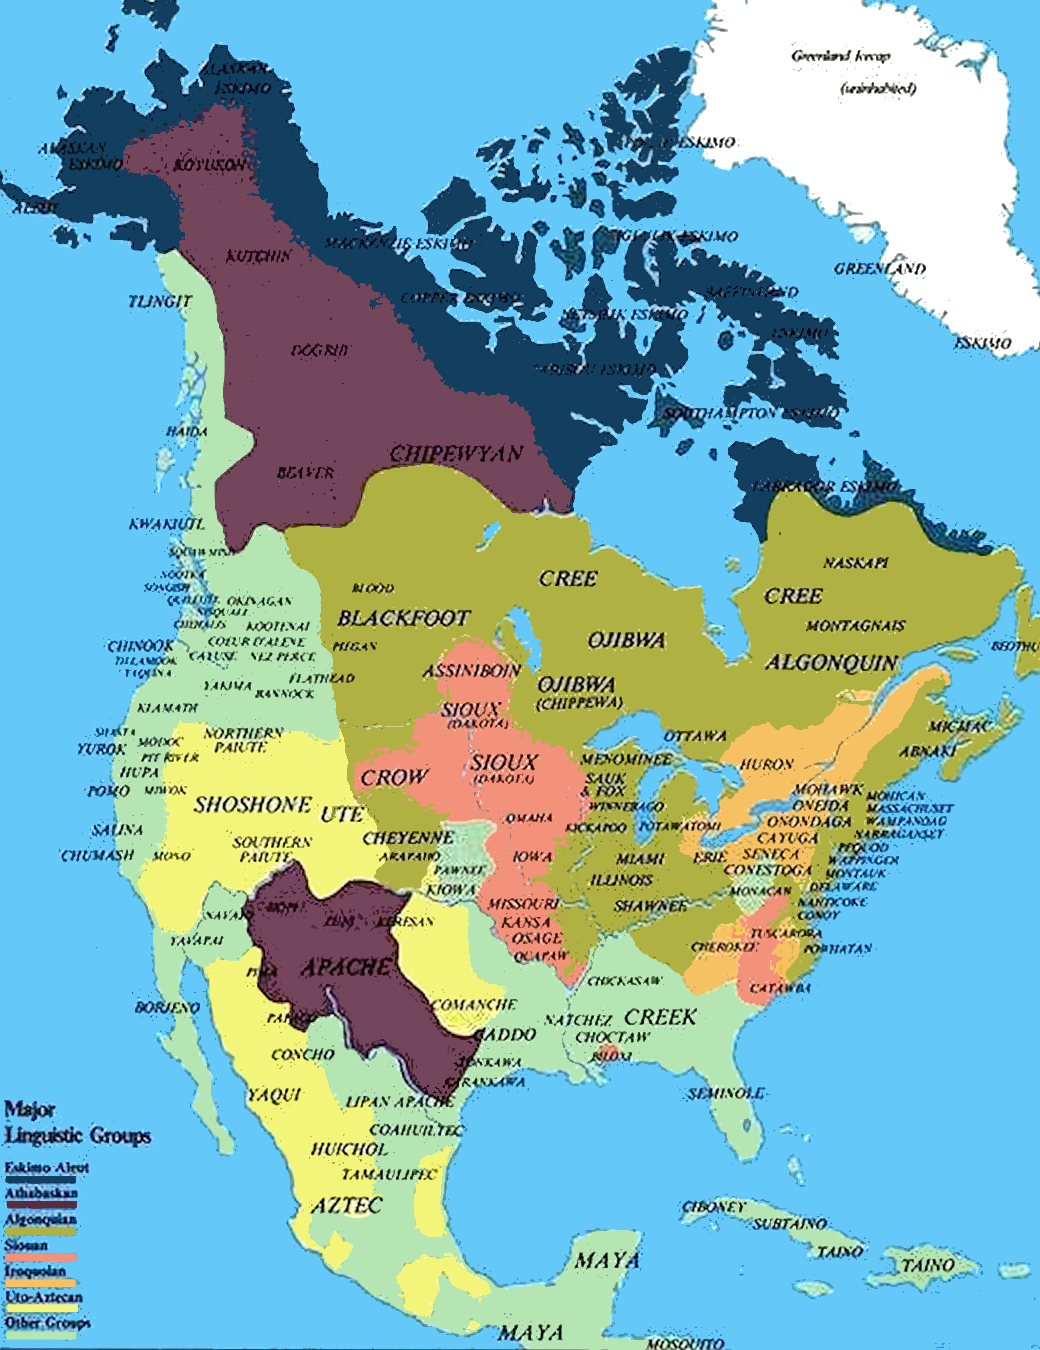 and it is this map that indicates a division of the north american continent by nations of indigenous peoples